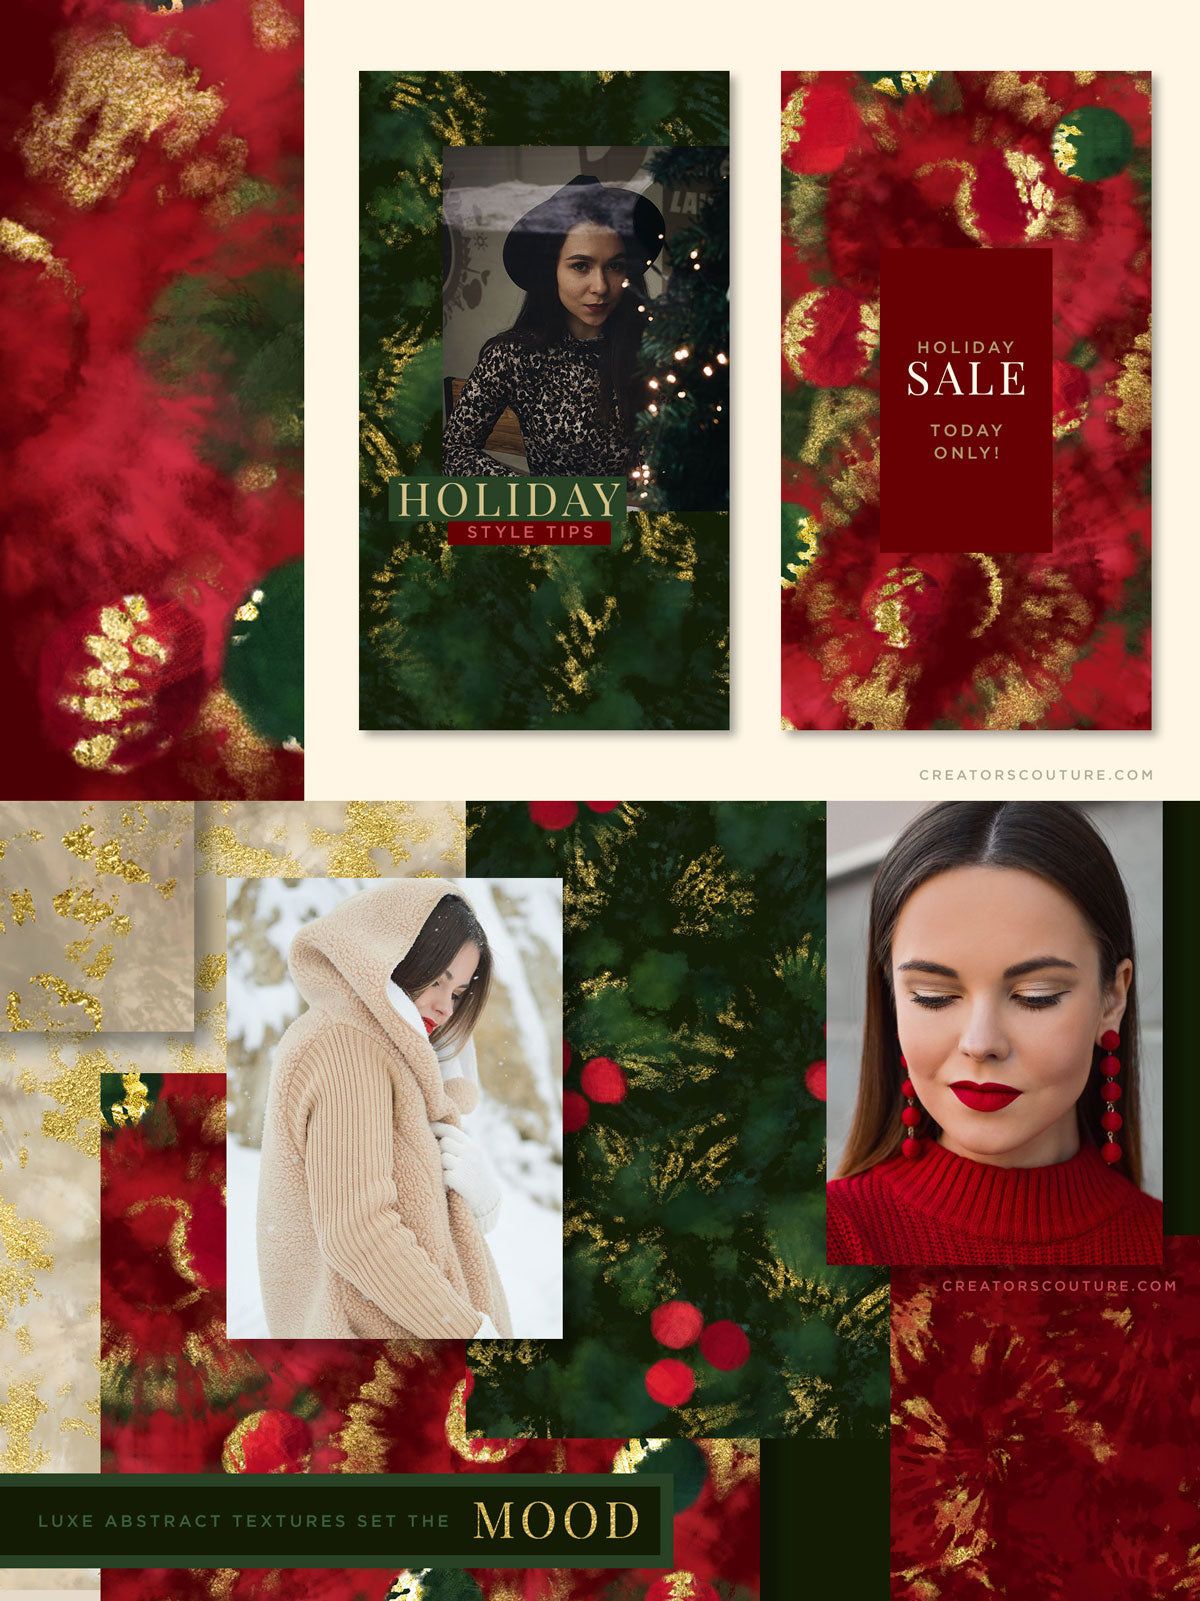 luxe christmas holiday painted backgrounds, social media graphics and mood board design